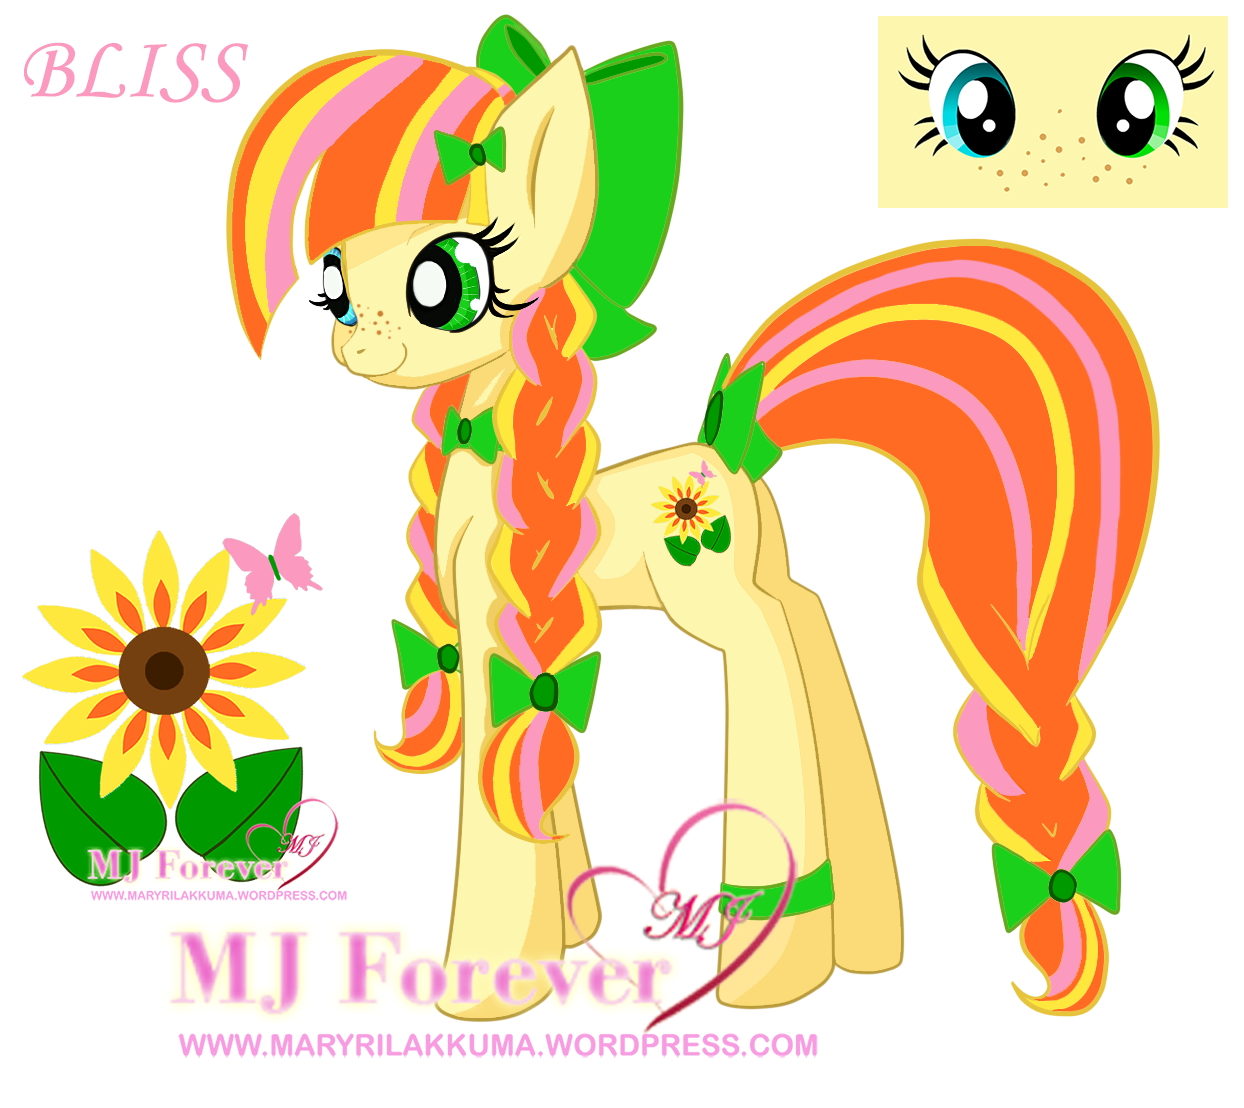 My earth pony OC - BLISS